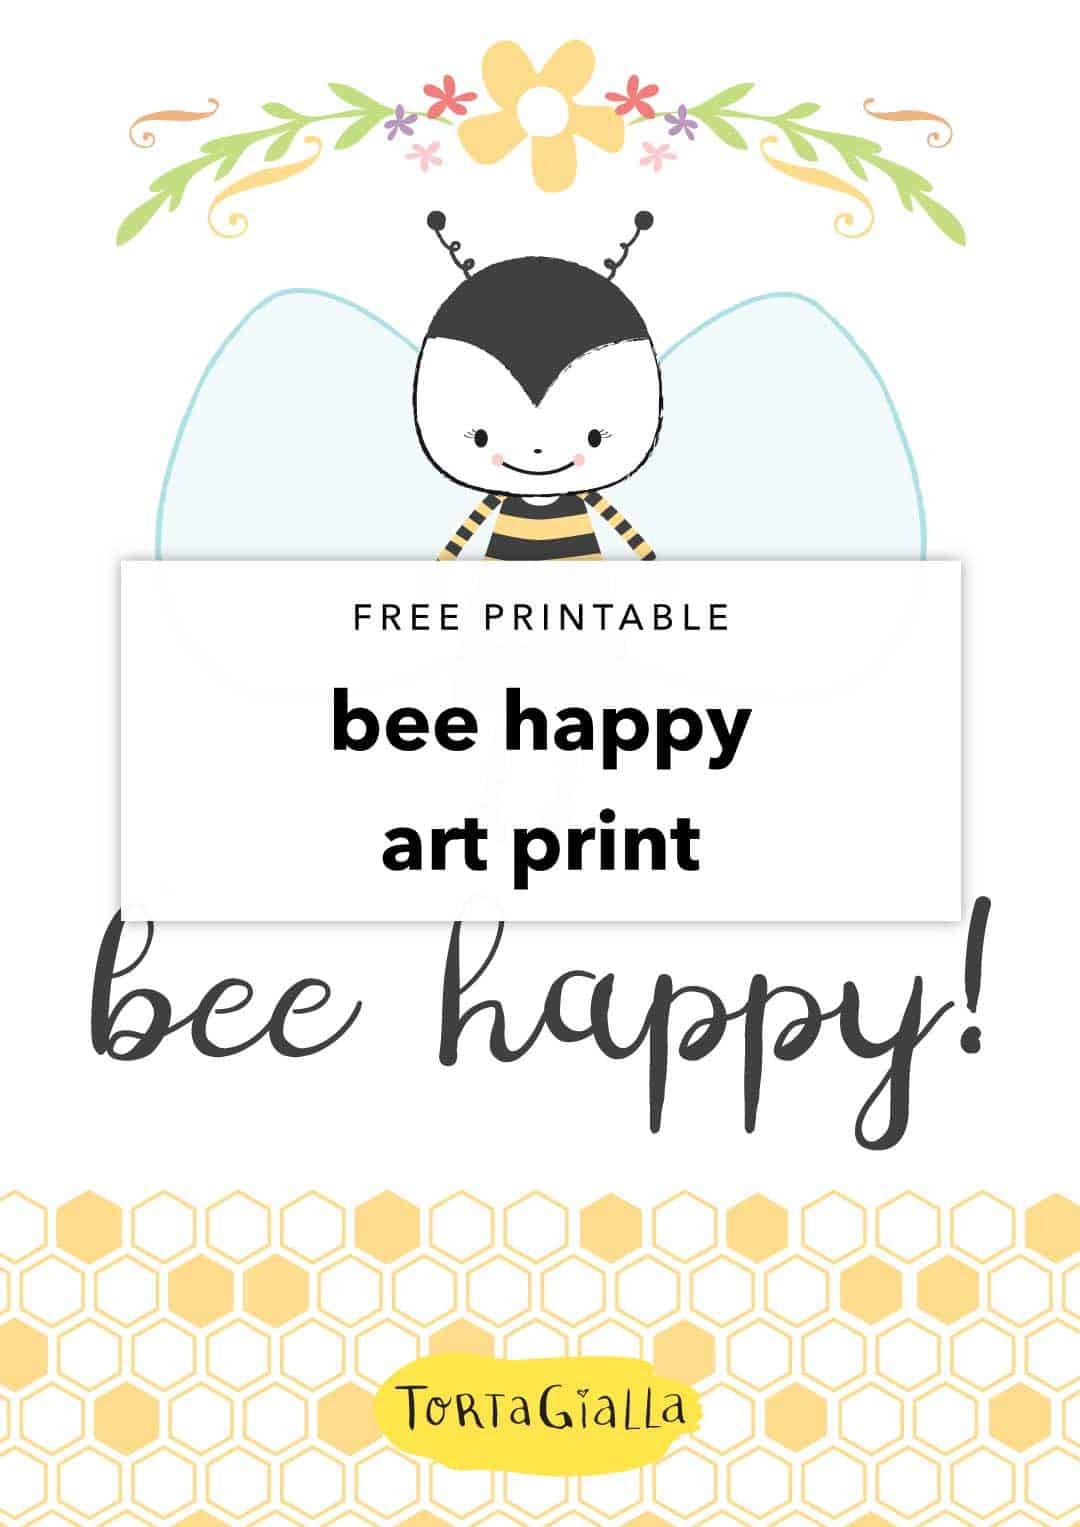 Looking for both form and function in cute decor? Give yourself a daily positive reminder with this free printable bee happy art print.